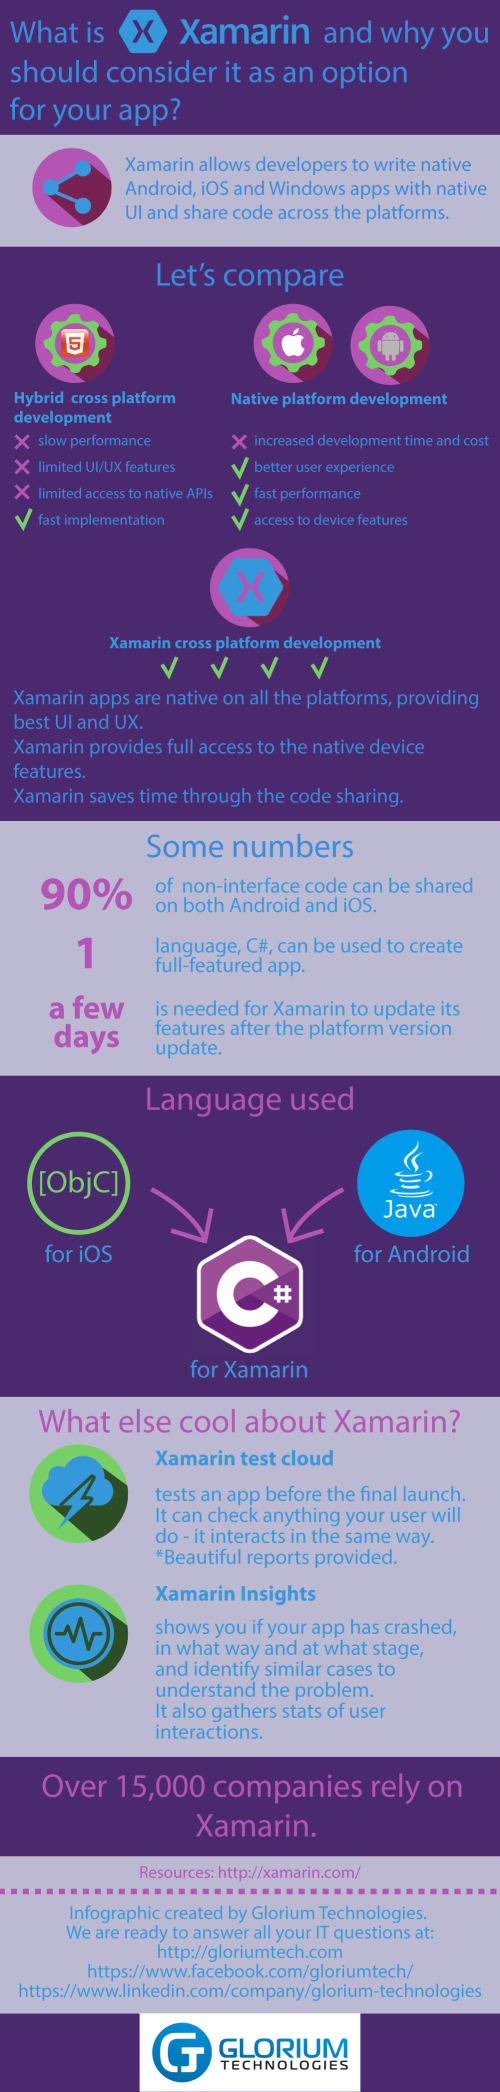 xamarin app development infographic